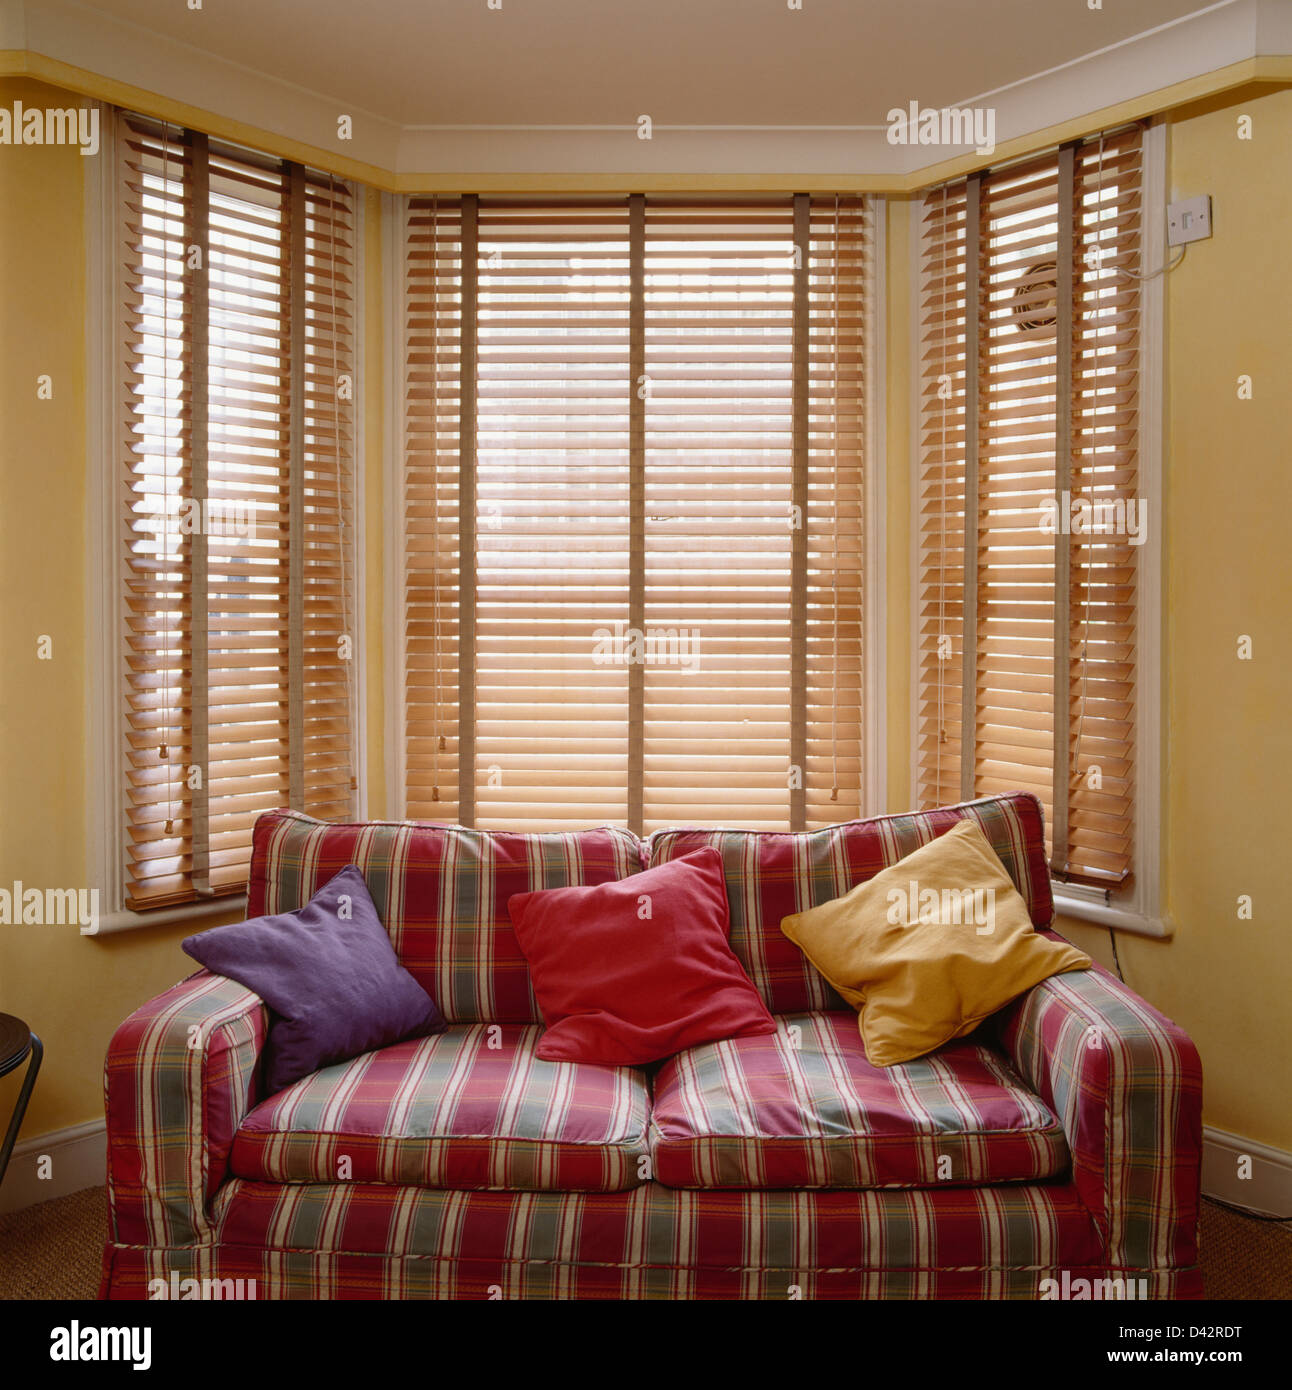 Cushions On Sofa With Red Striped Loose Cover In Front Of Bay Window With  Wooden Venetian Blind